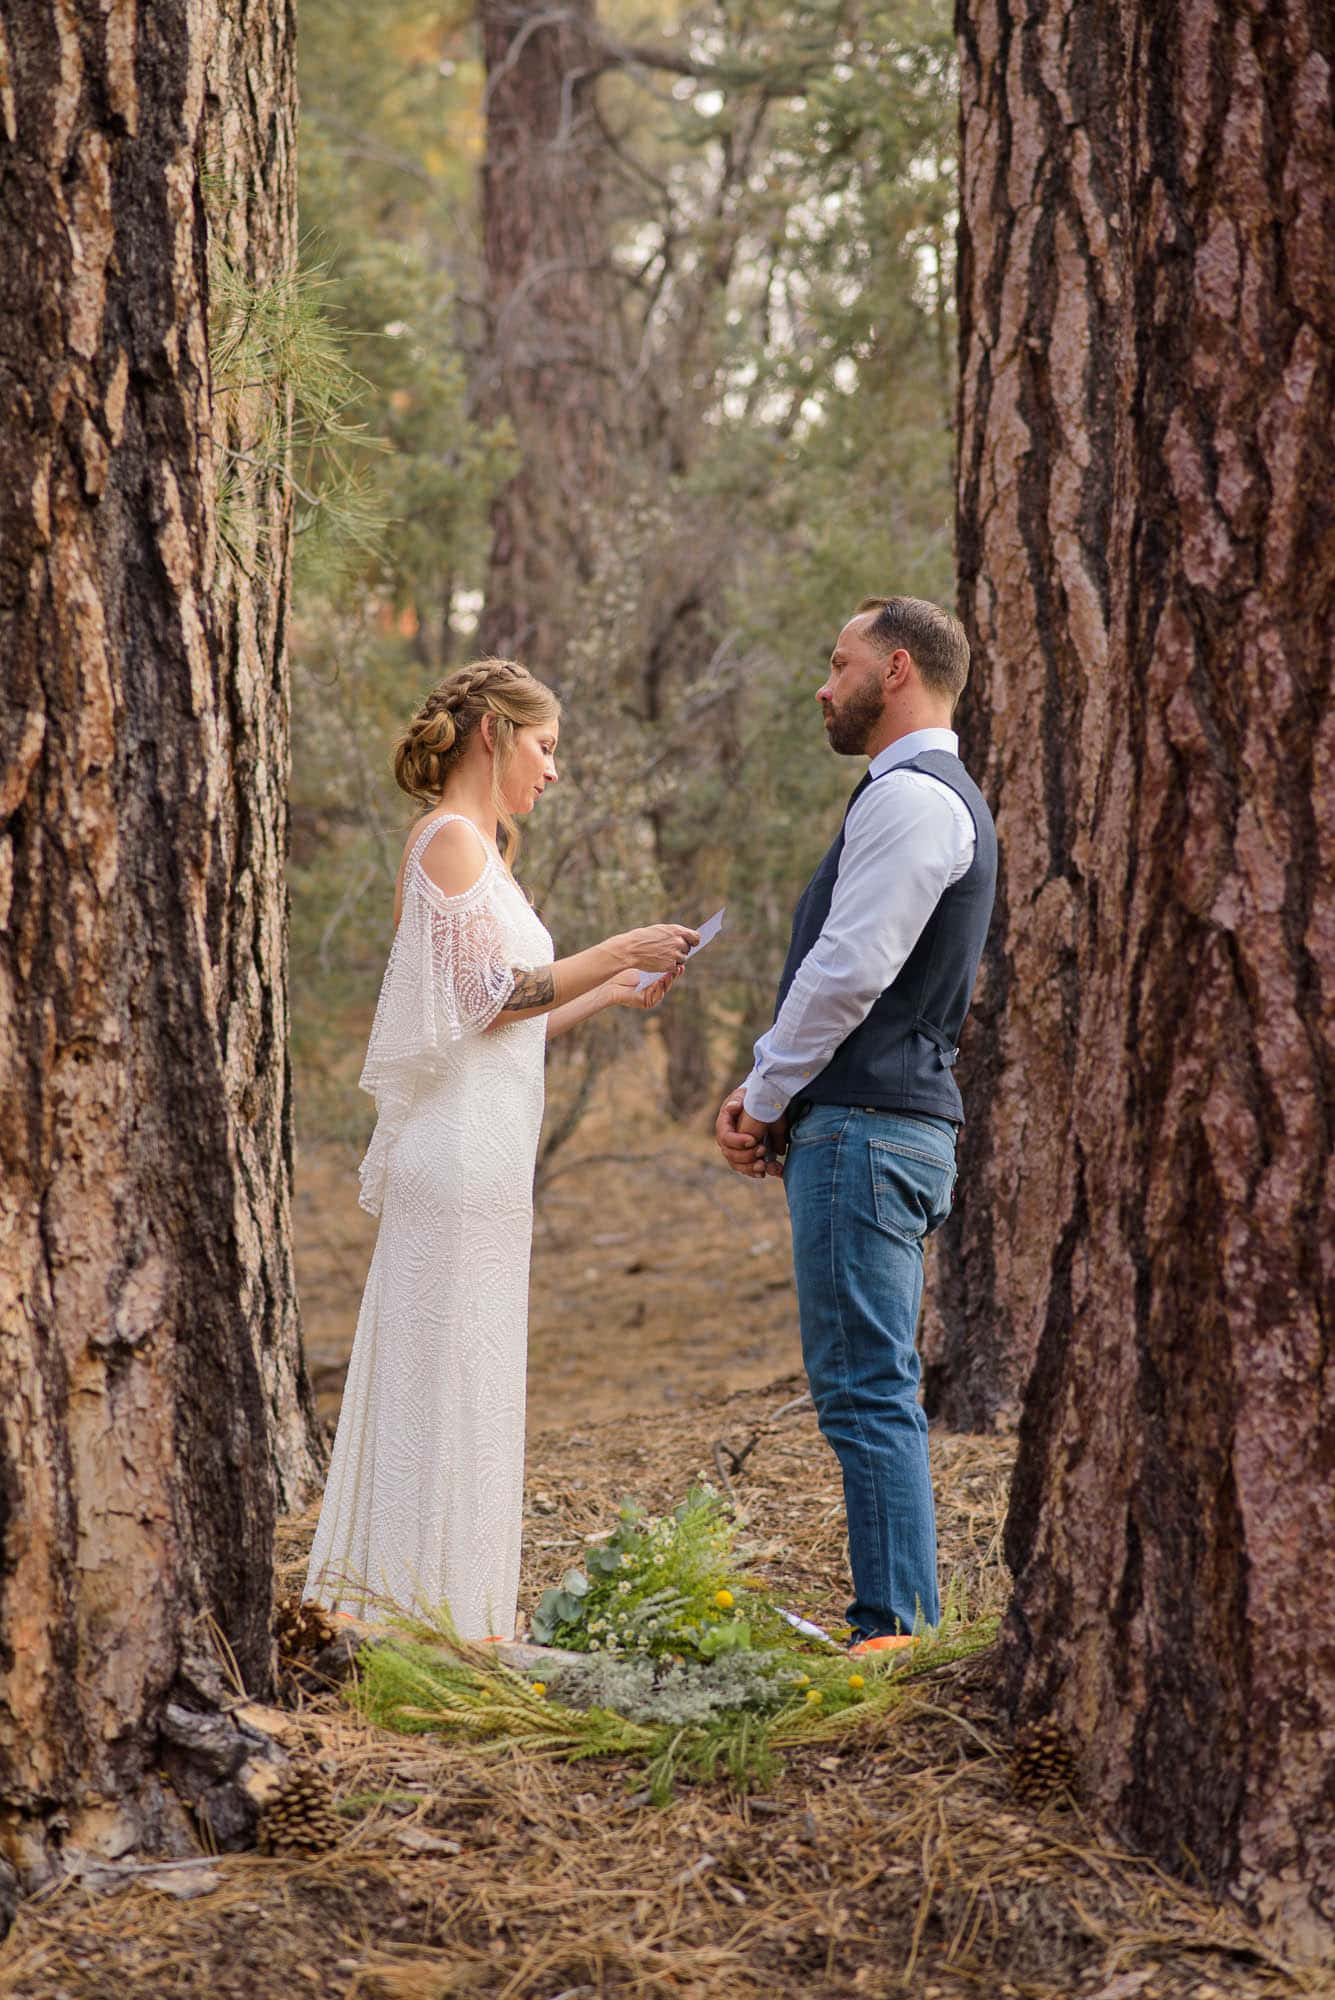 022_Alan_and_Heidi_Big_Bear_Elopement_Holly_Sean